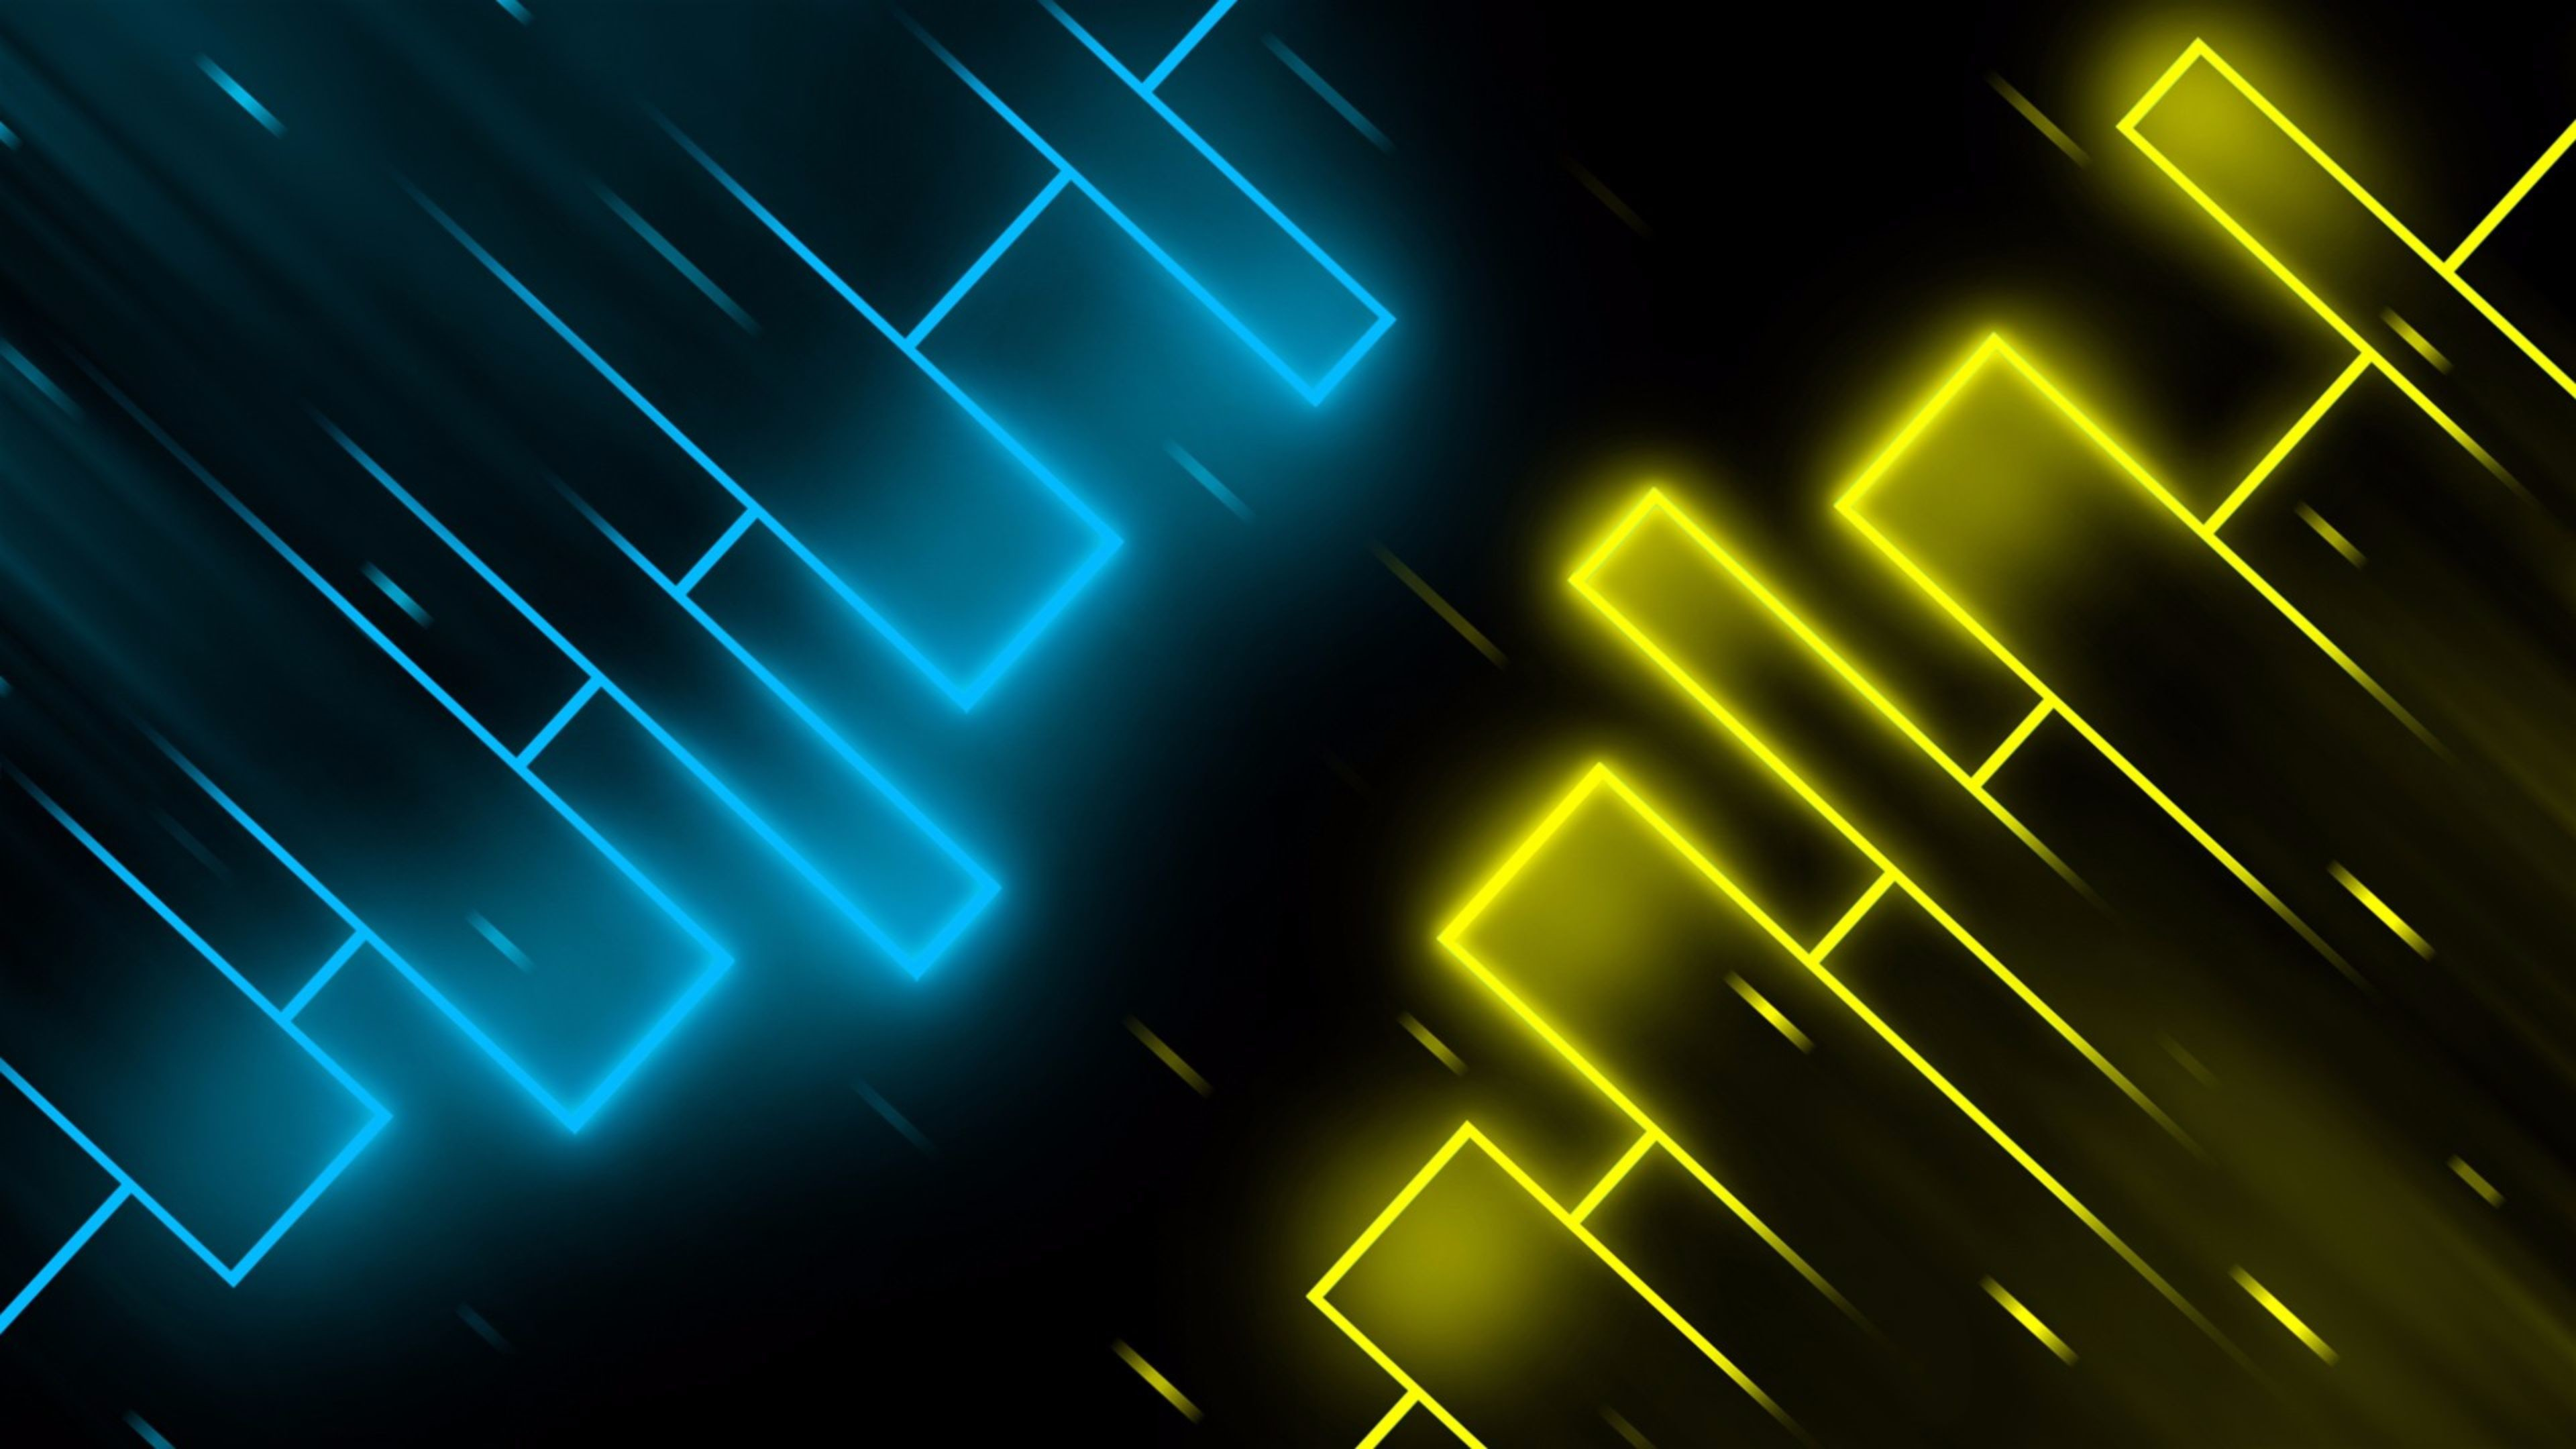 4k Abstract Wallpapers 80 Background Pictures